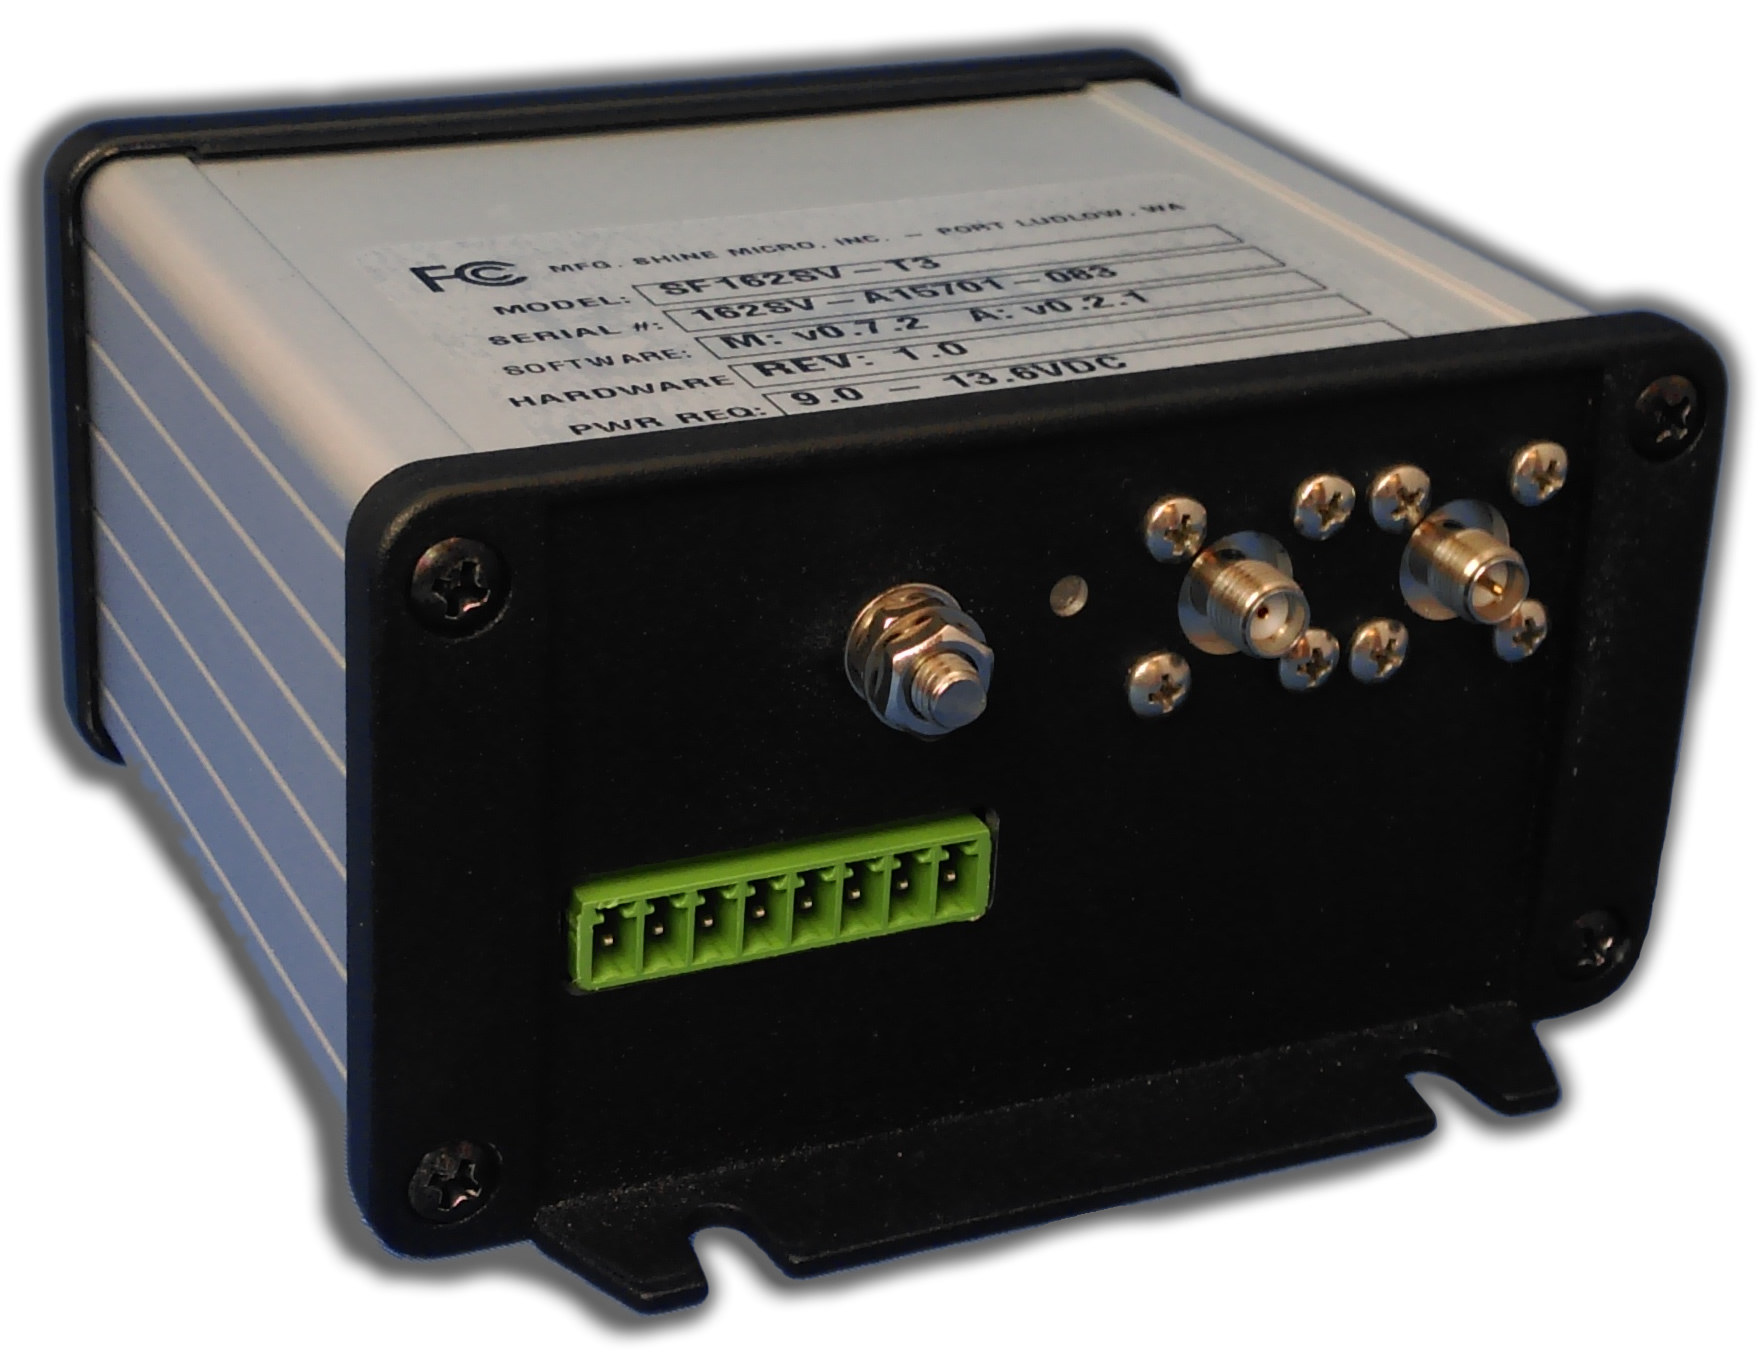 SF162SV-T3 AIS Receiver for Unmanned Surface Vehicles